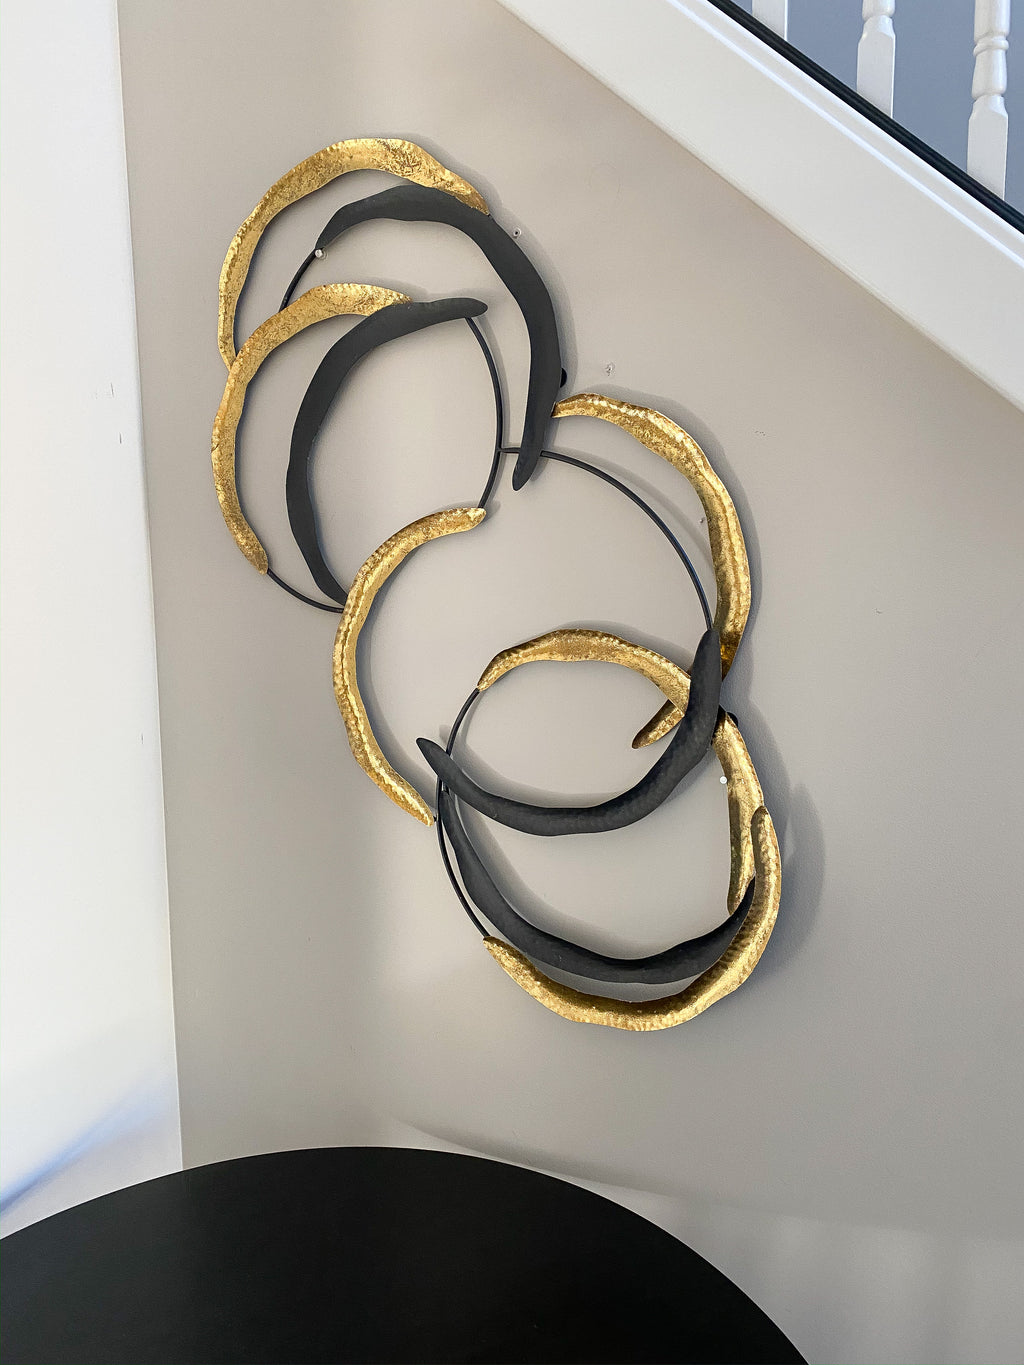 Gold and Black Loop Wall Decor-Inspire Me! Home Decor